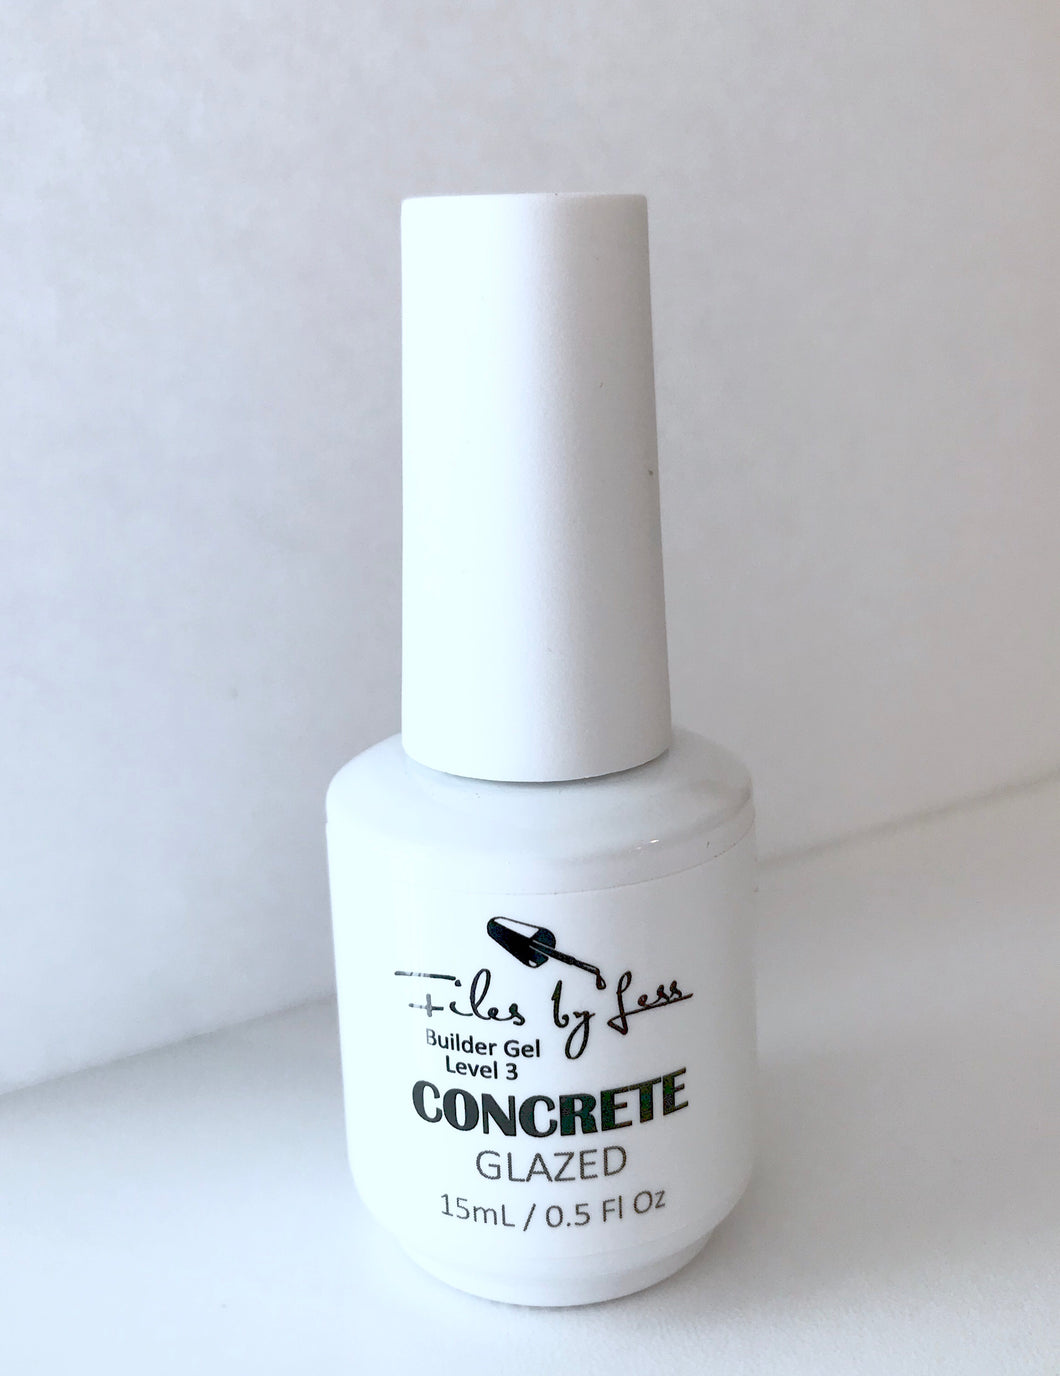 CONCRETE Builder Gel GLAZED